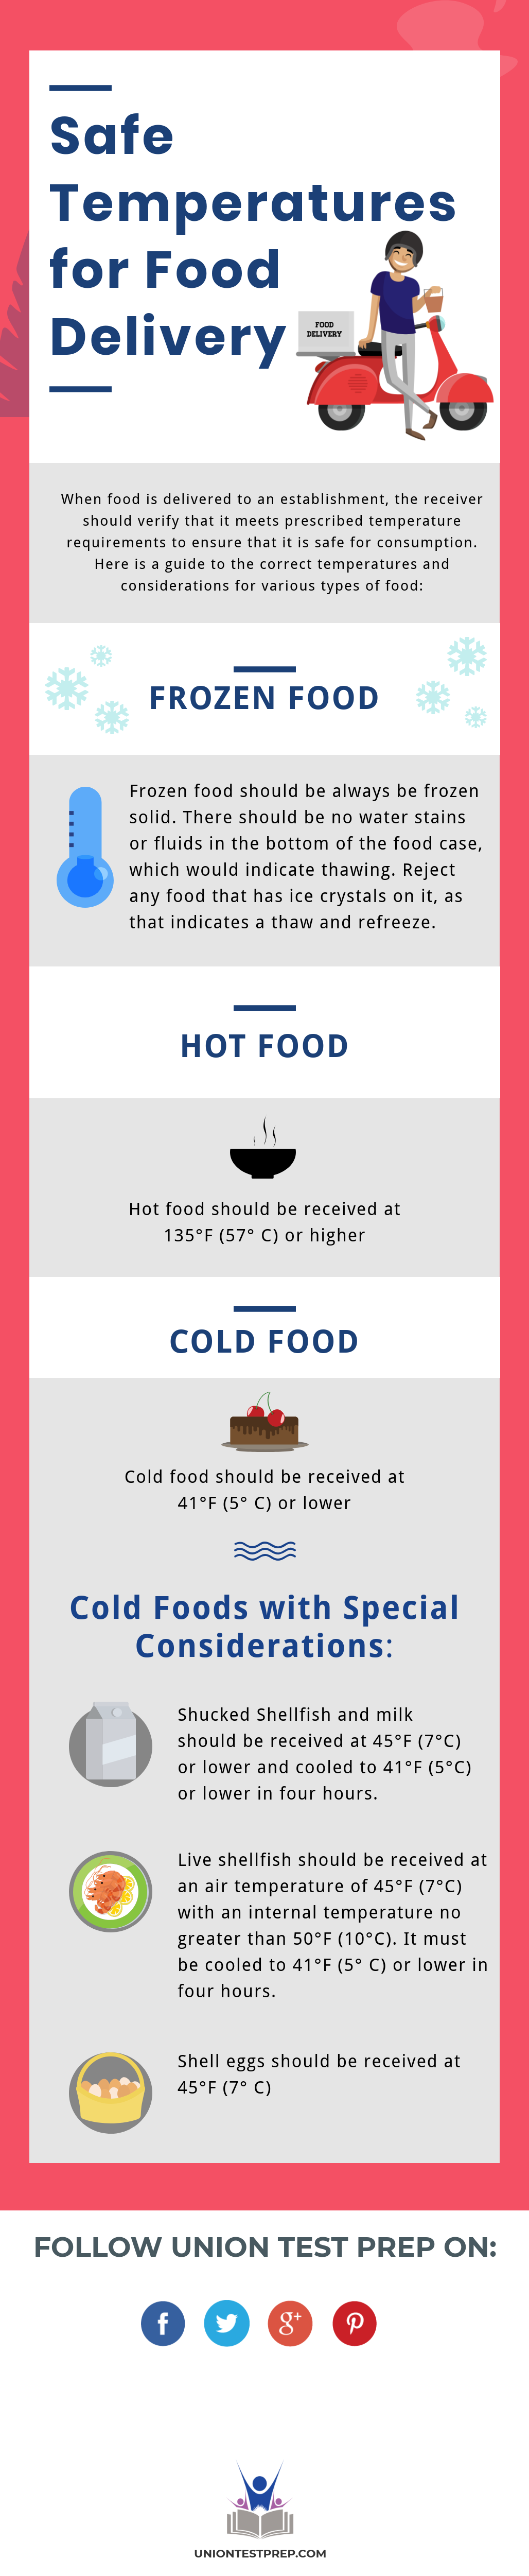 Safe Temperatures for Food Delivery